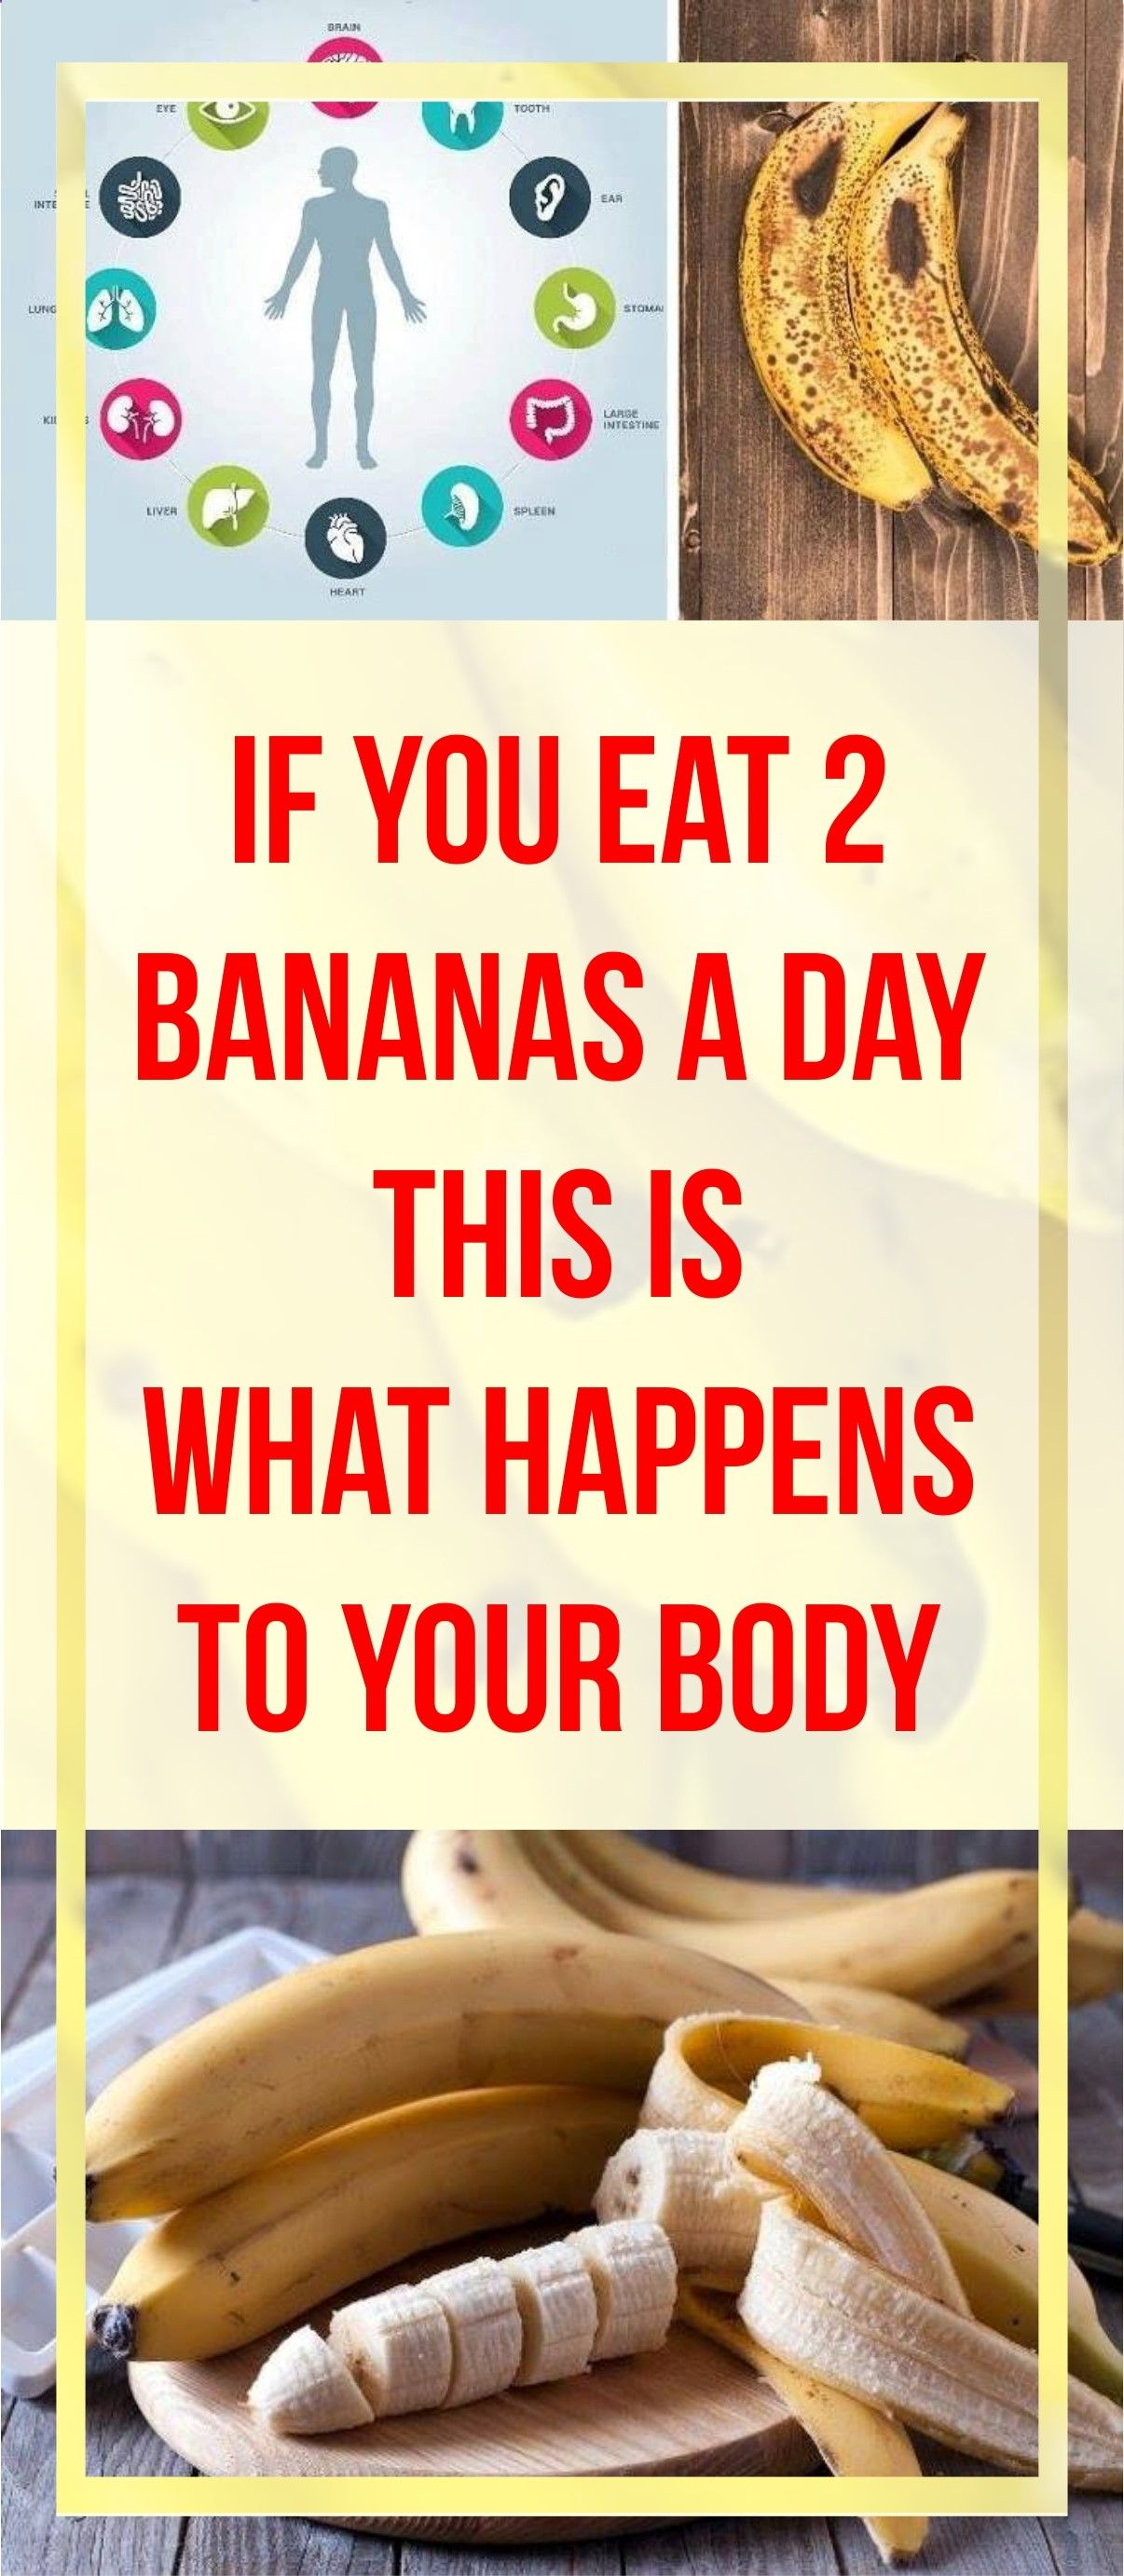 Ever Wonder What Will Happen To Your Body If You Eat 2 Bananas A